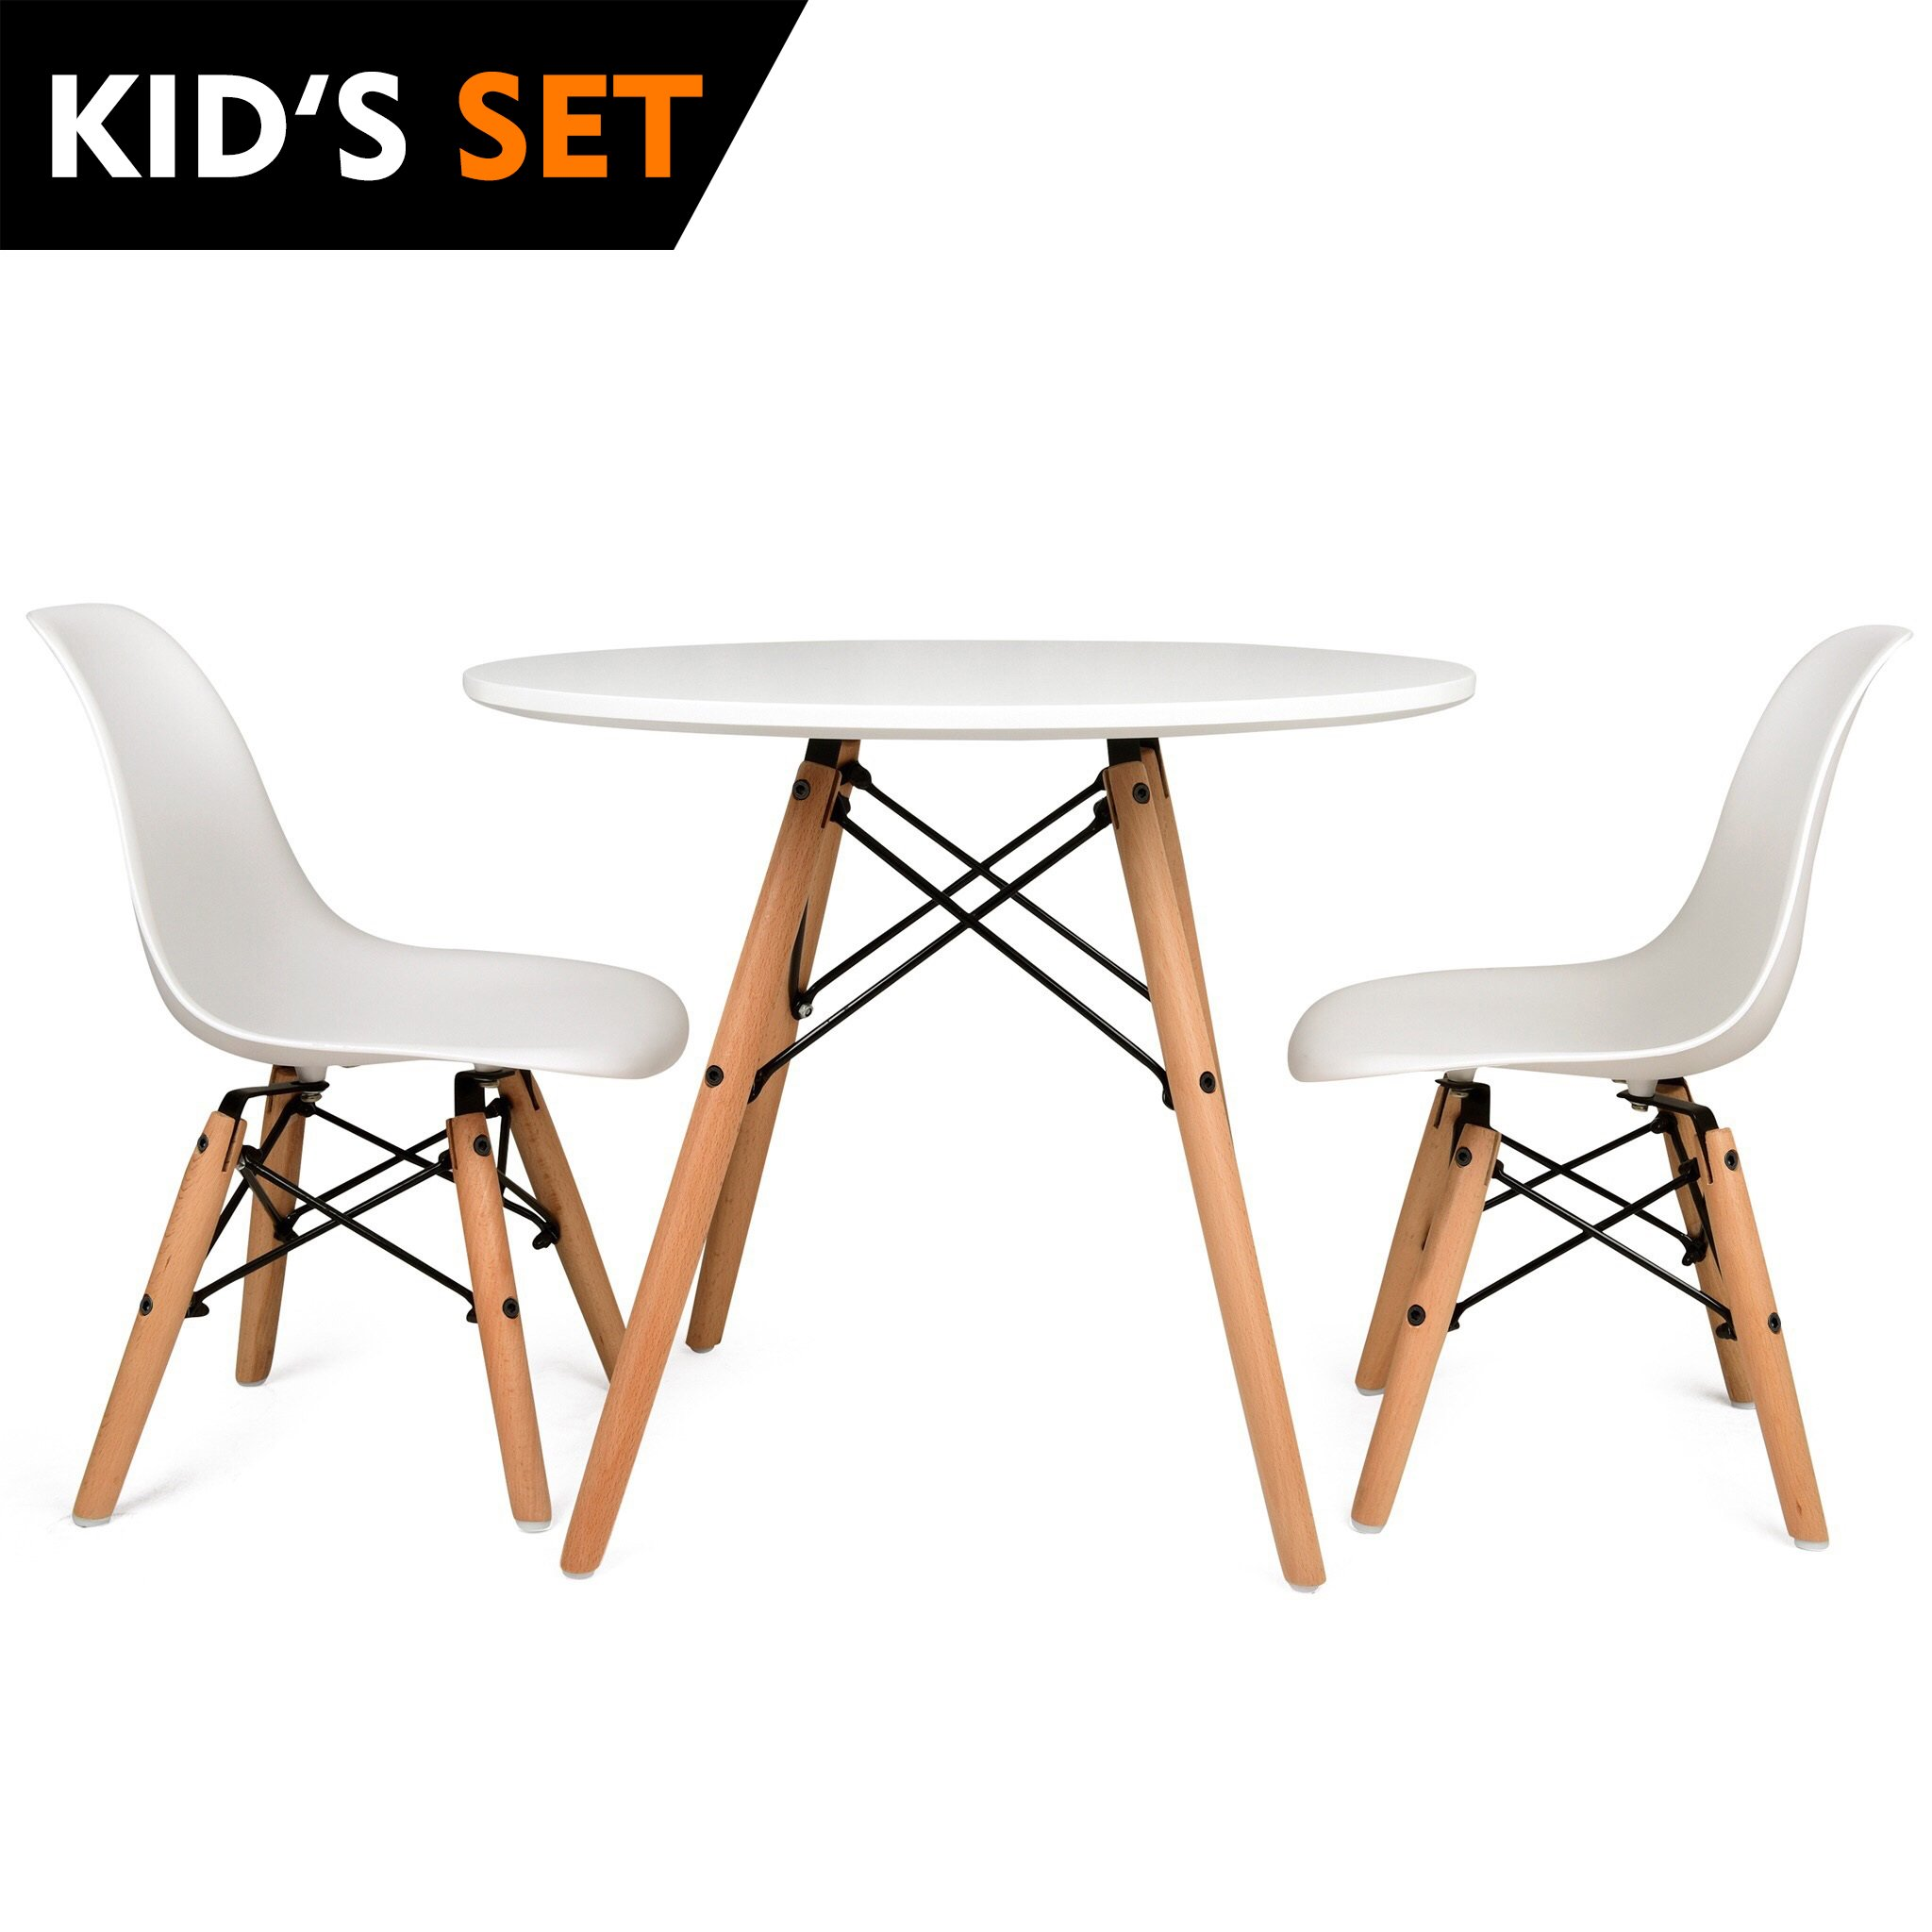 UrbanMod KIDS Eames Style Modern White Table Set, Round Table With Two (2) ABS Easy-Clean Chairs!! Highest Strength Capacity (330lbs) - Safer Chair Height!